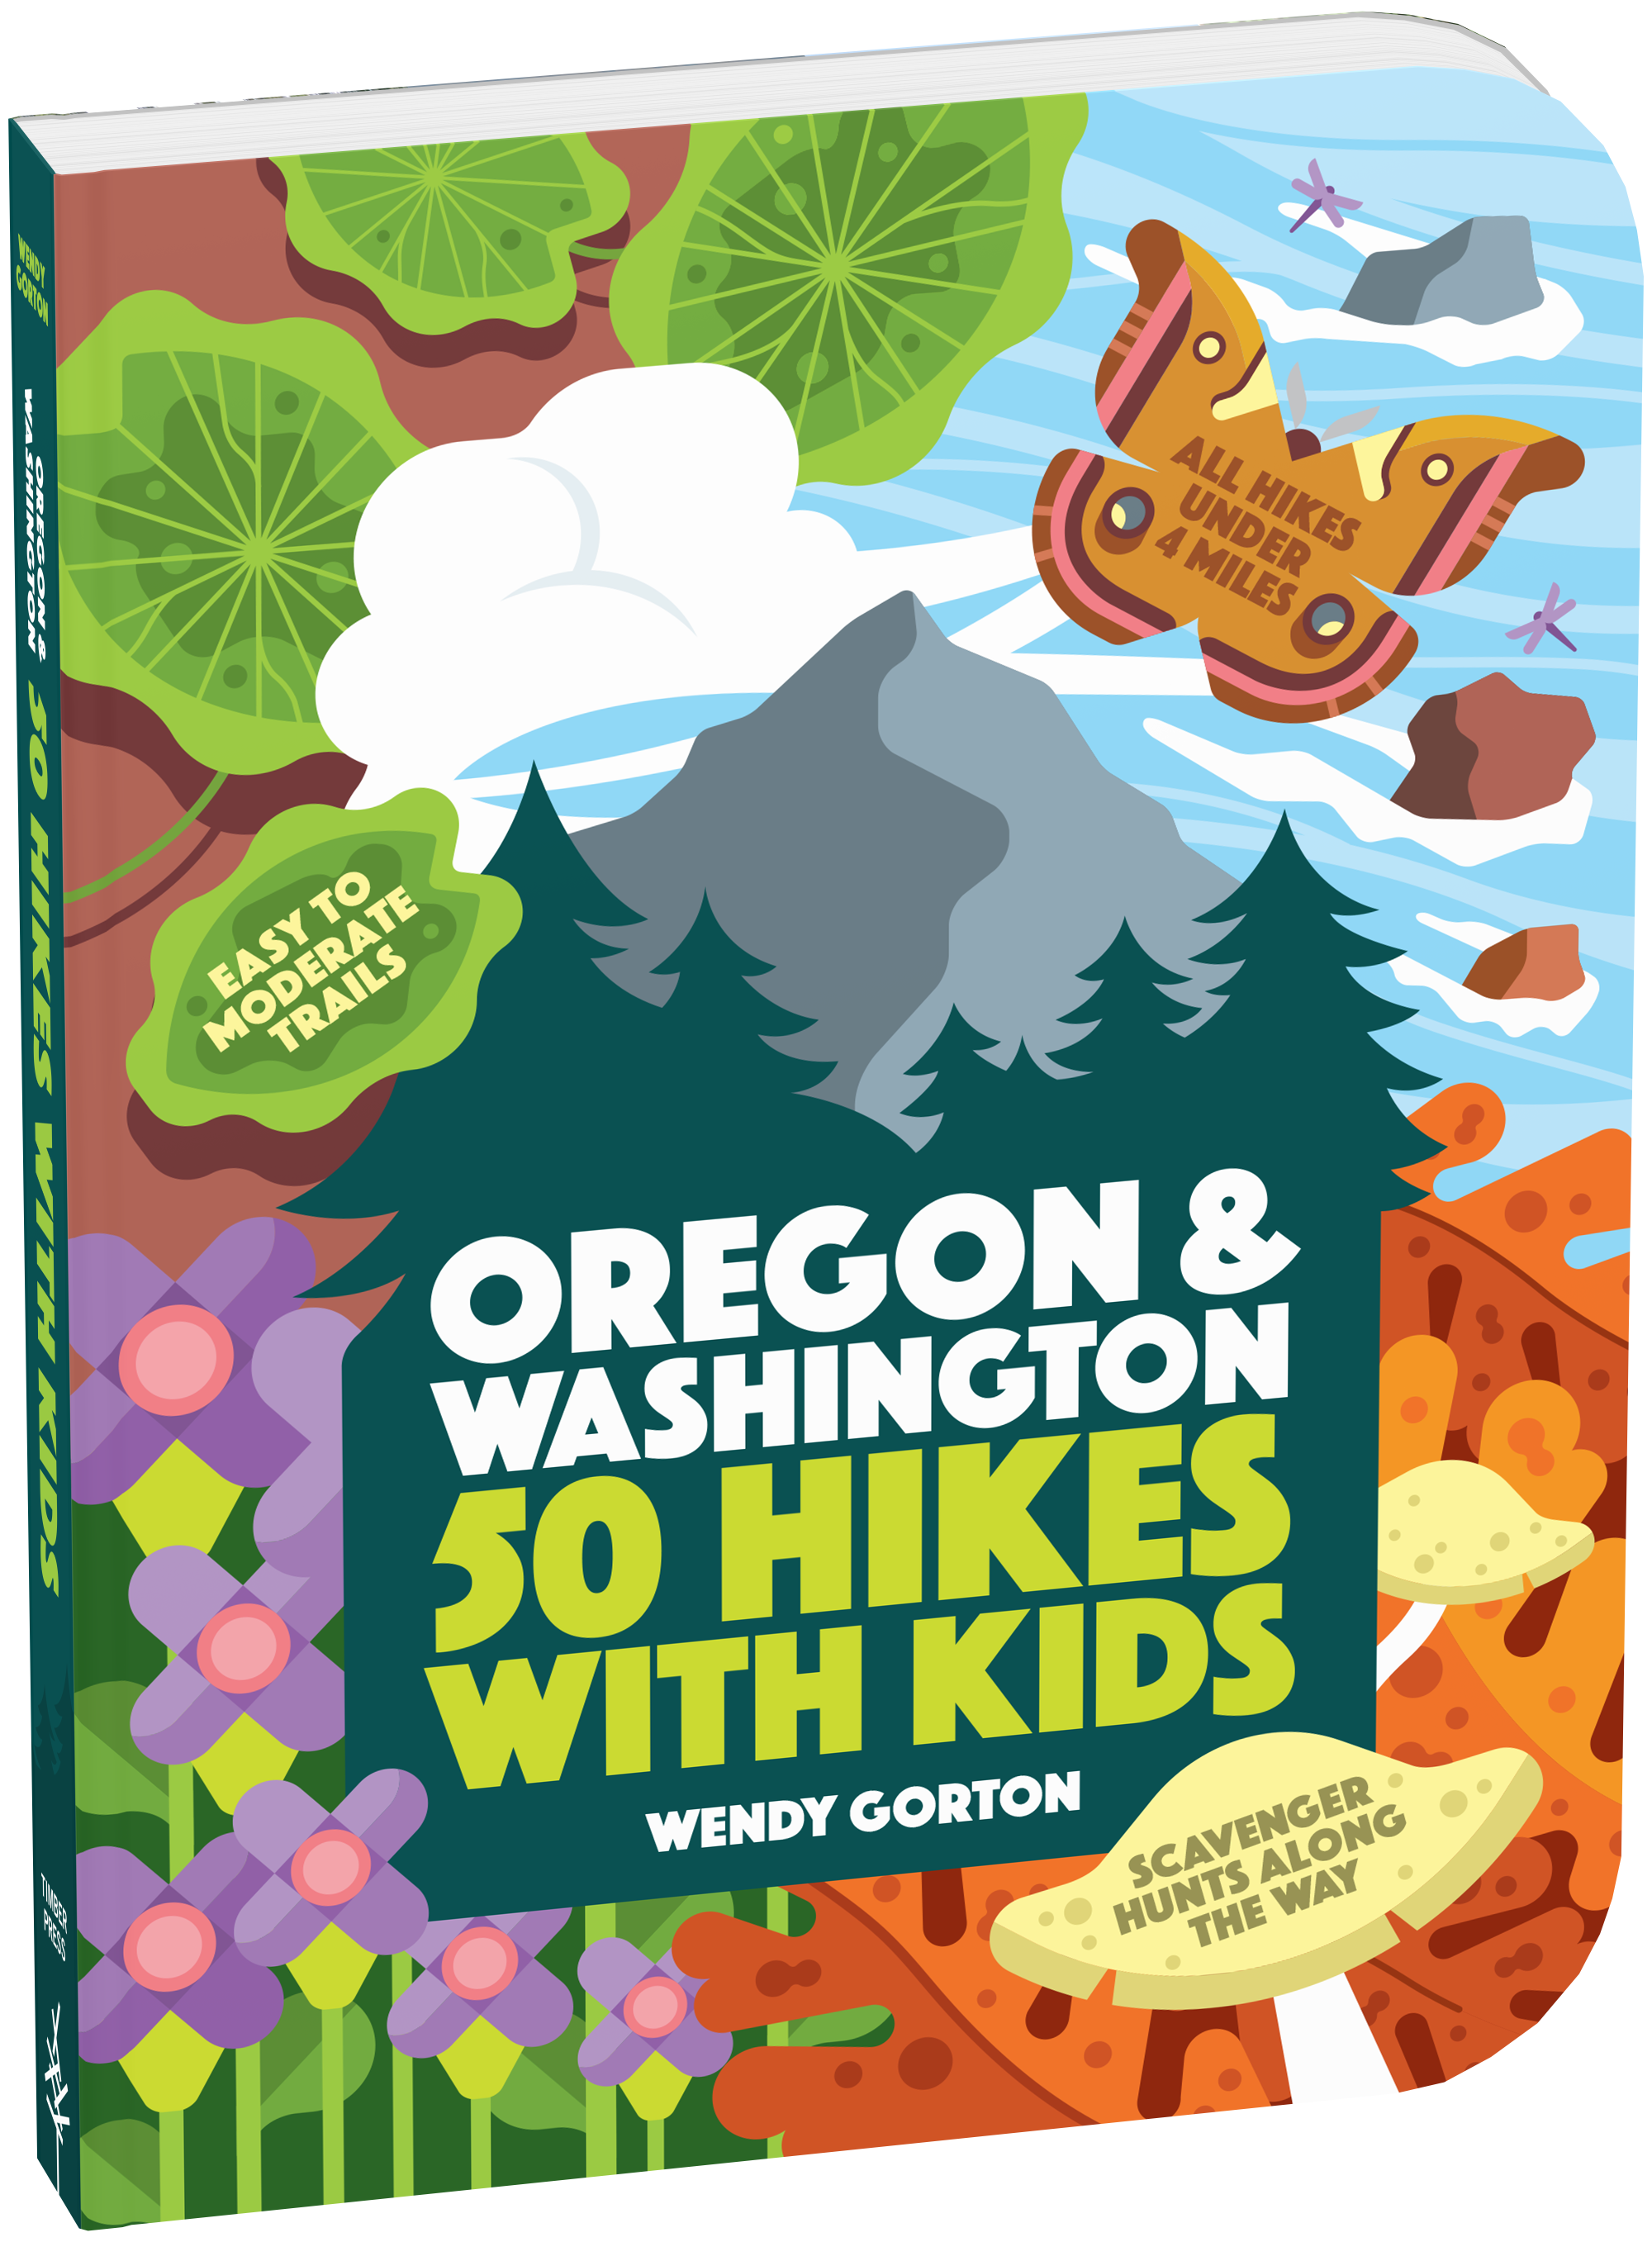 Scavenger hunt clipart trail map. Hikes with kids